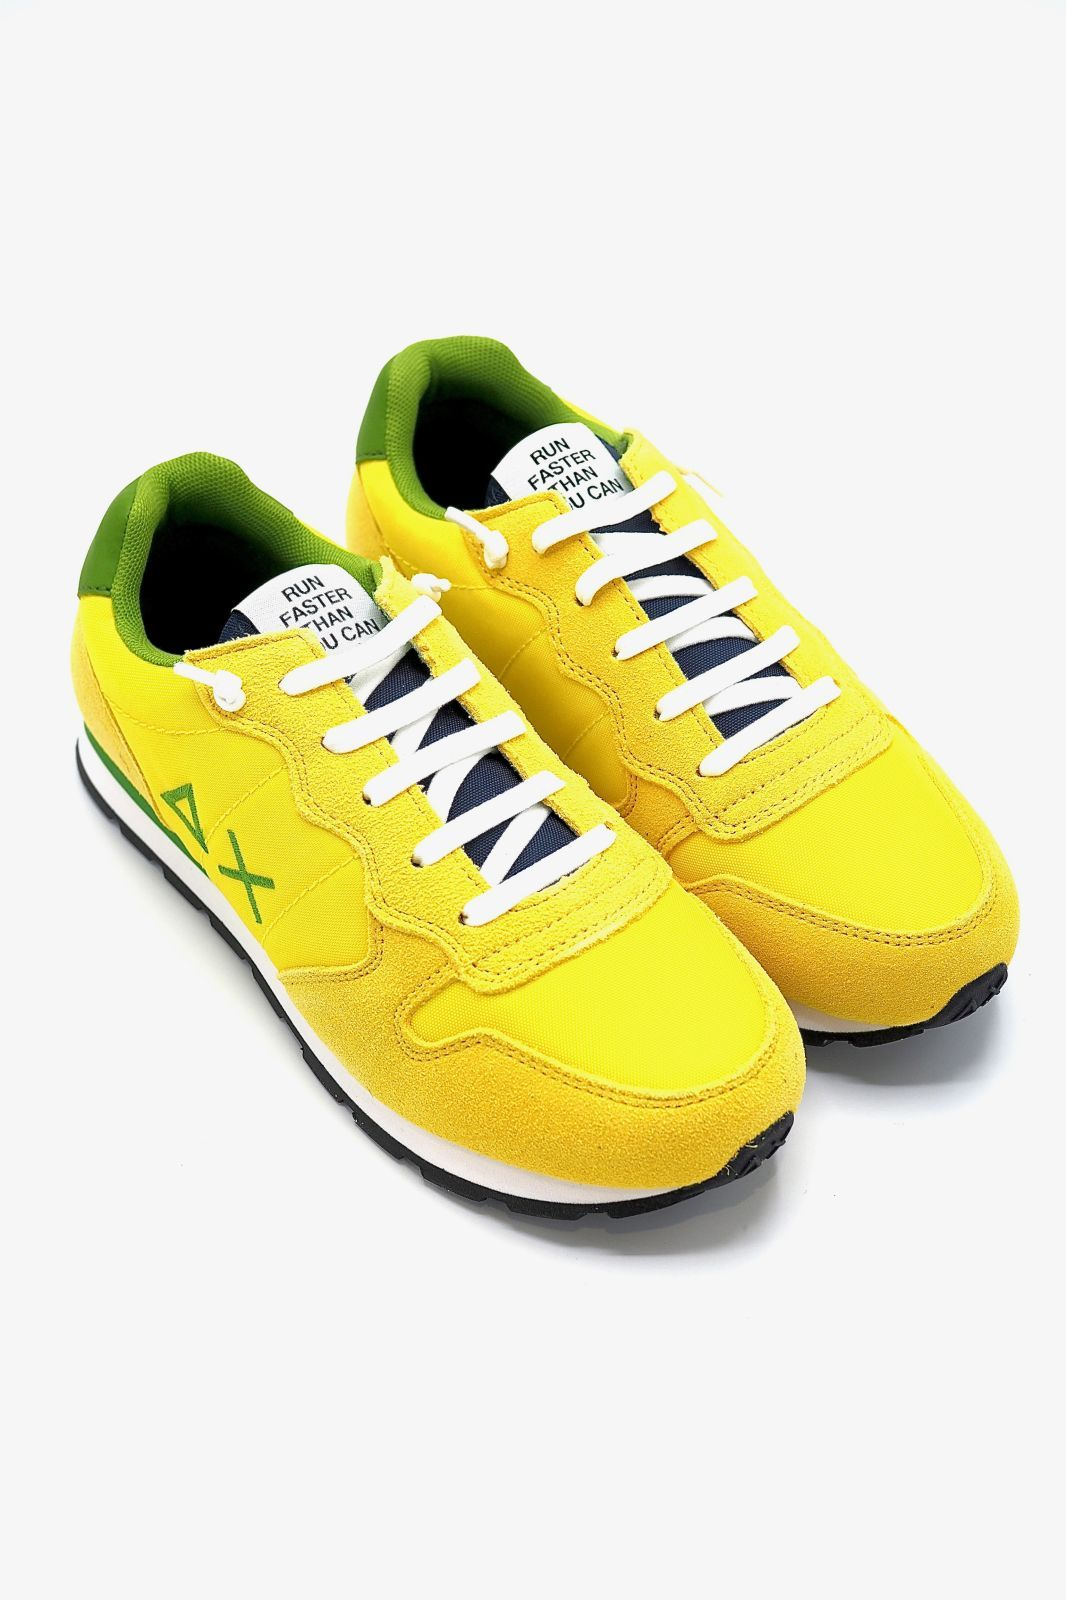 SUN68 basket bas Jaune hommes (SUN68-Jr-Runner  - Z30301 Jr jaune Brazil) - Marine | Much more than shoes